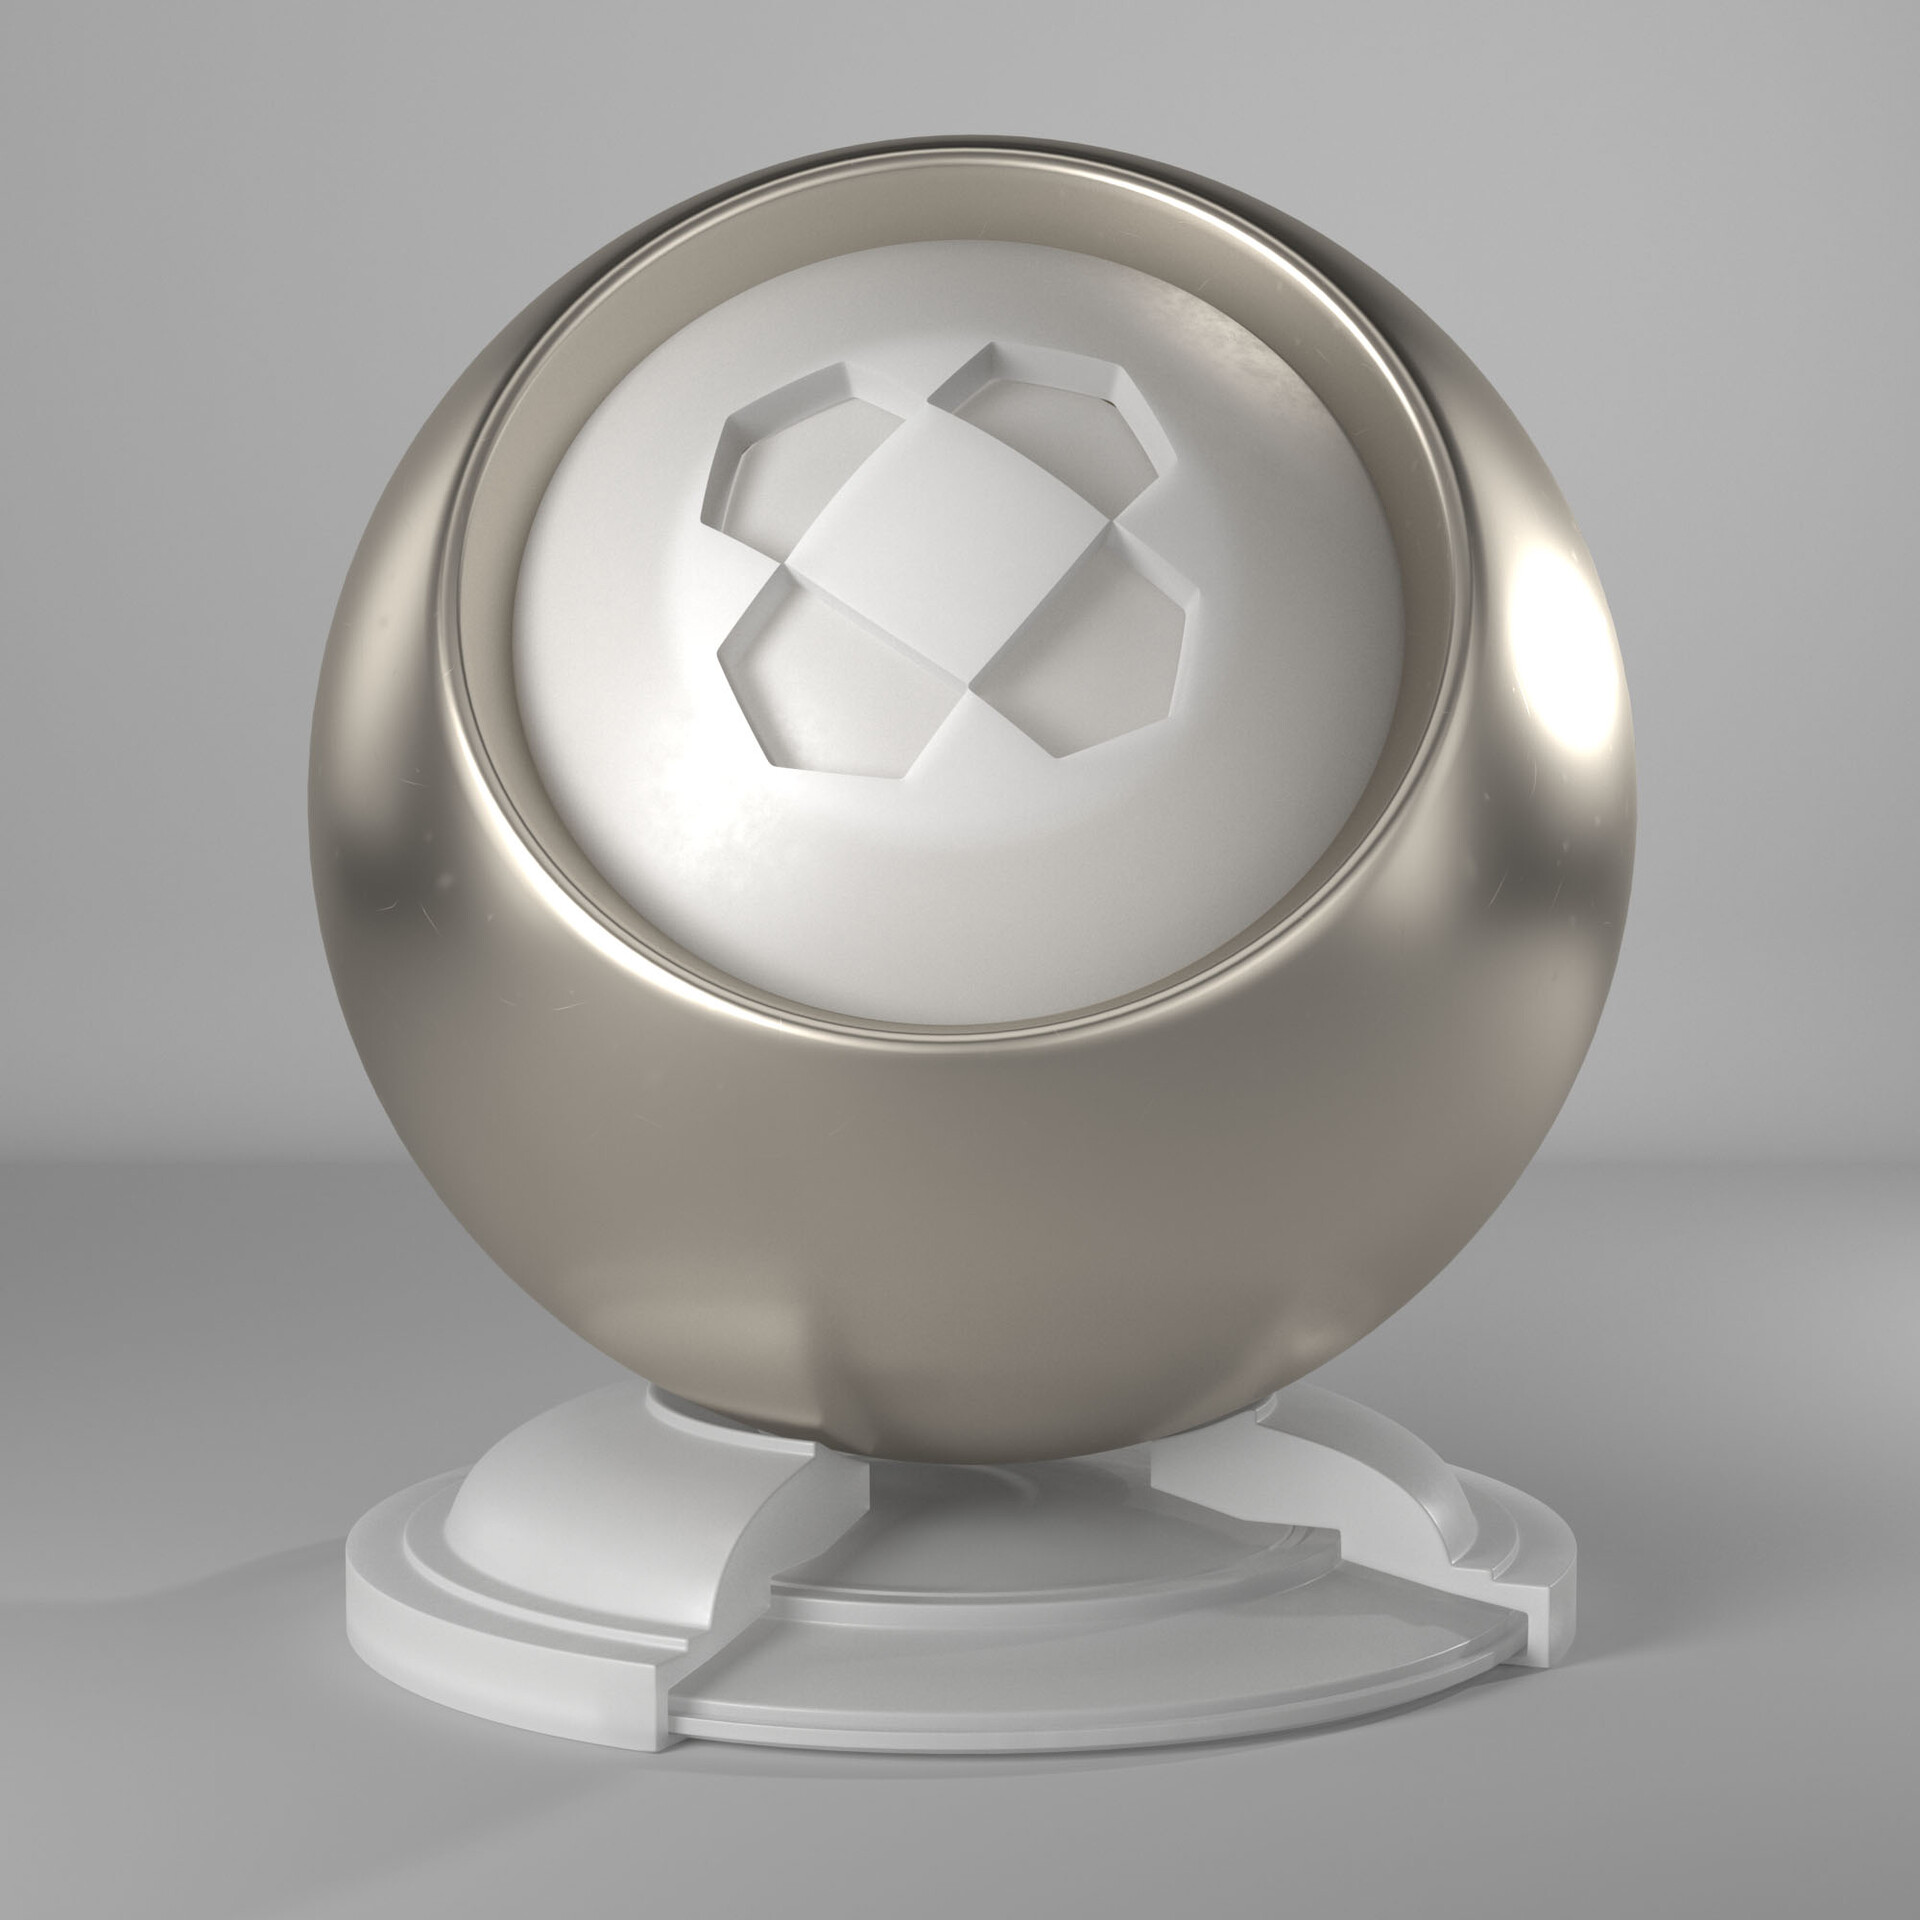 Nickel with white frosted glass